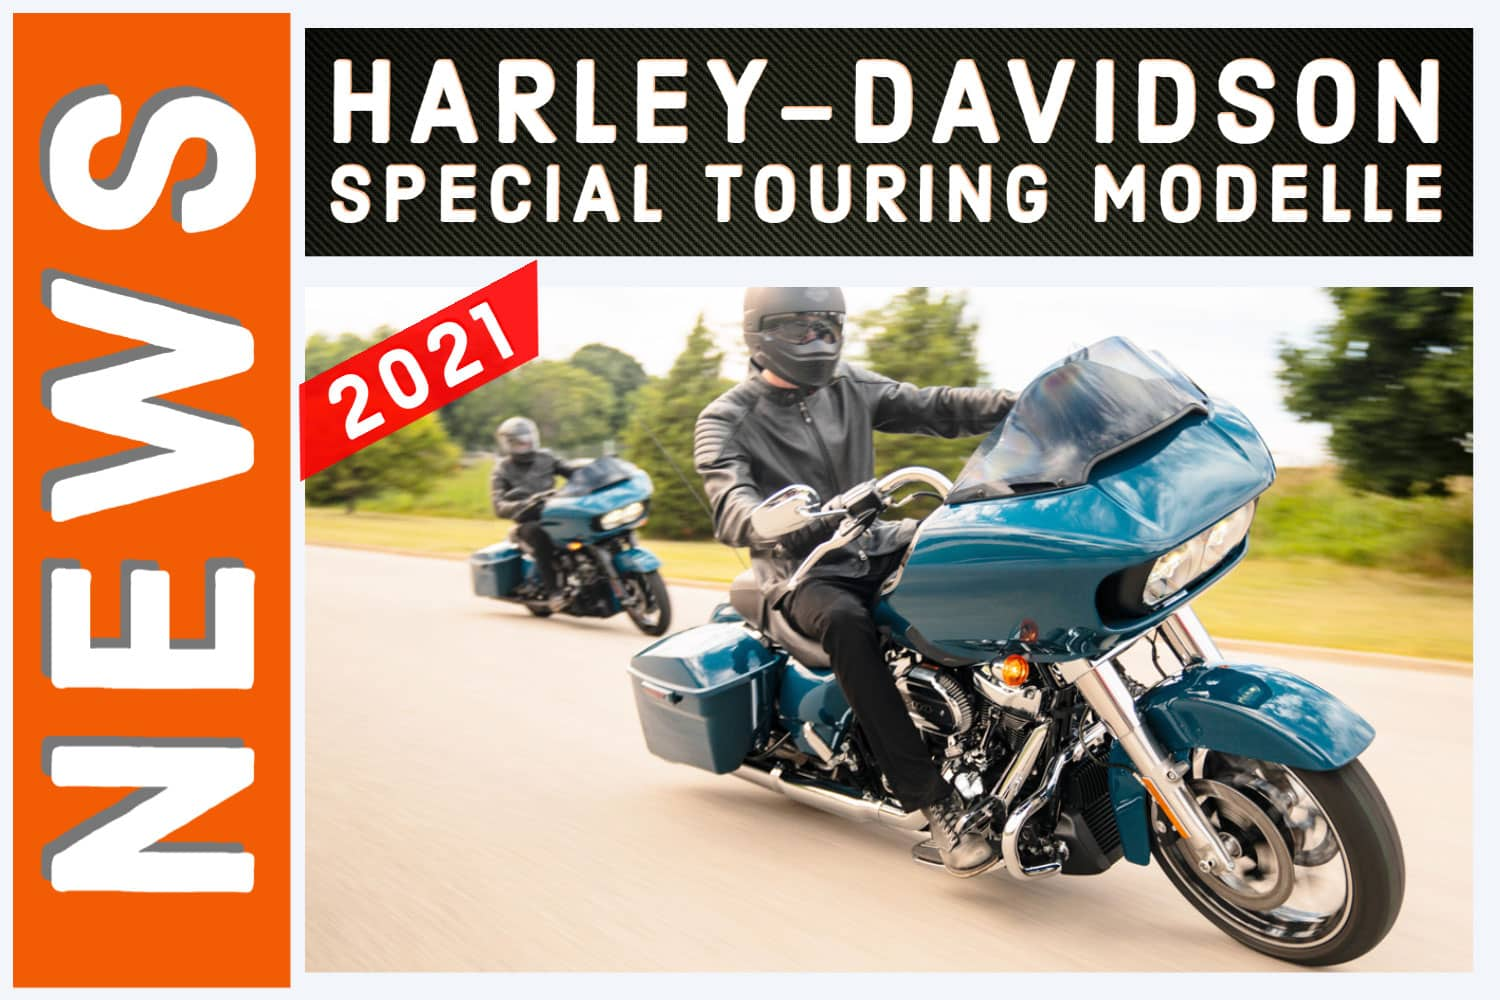 Die Harley-Davidson Special Touring Modelle 2021